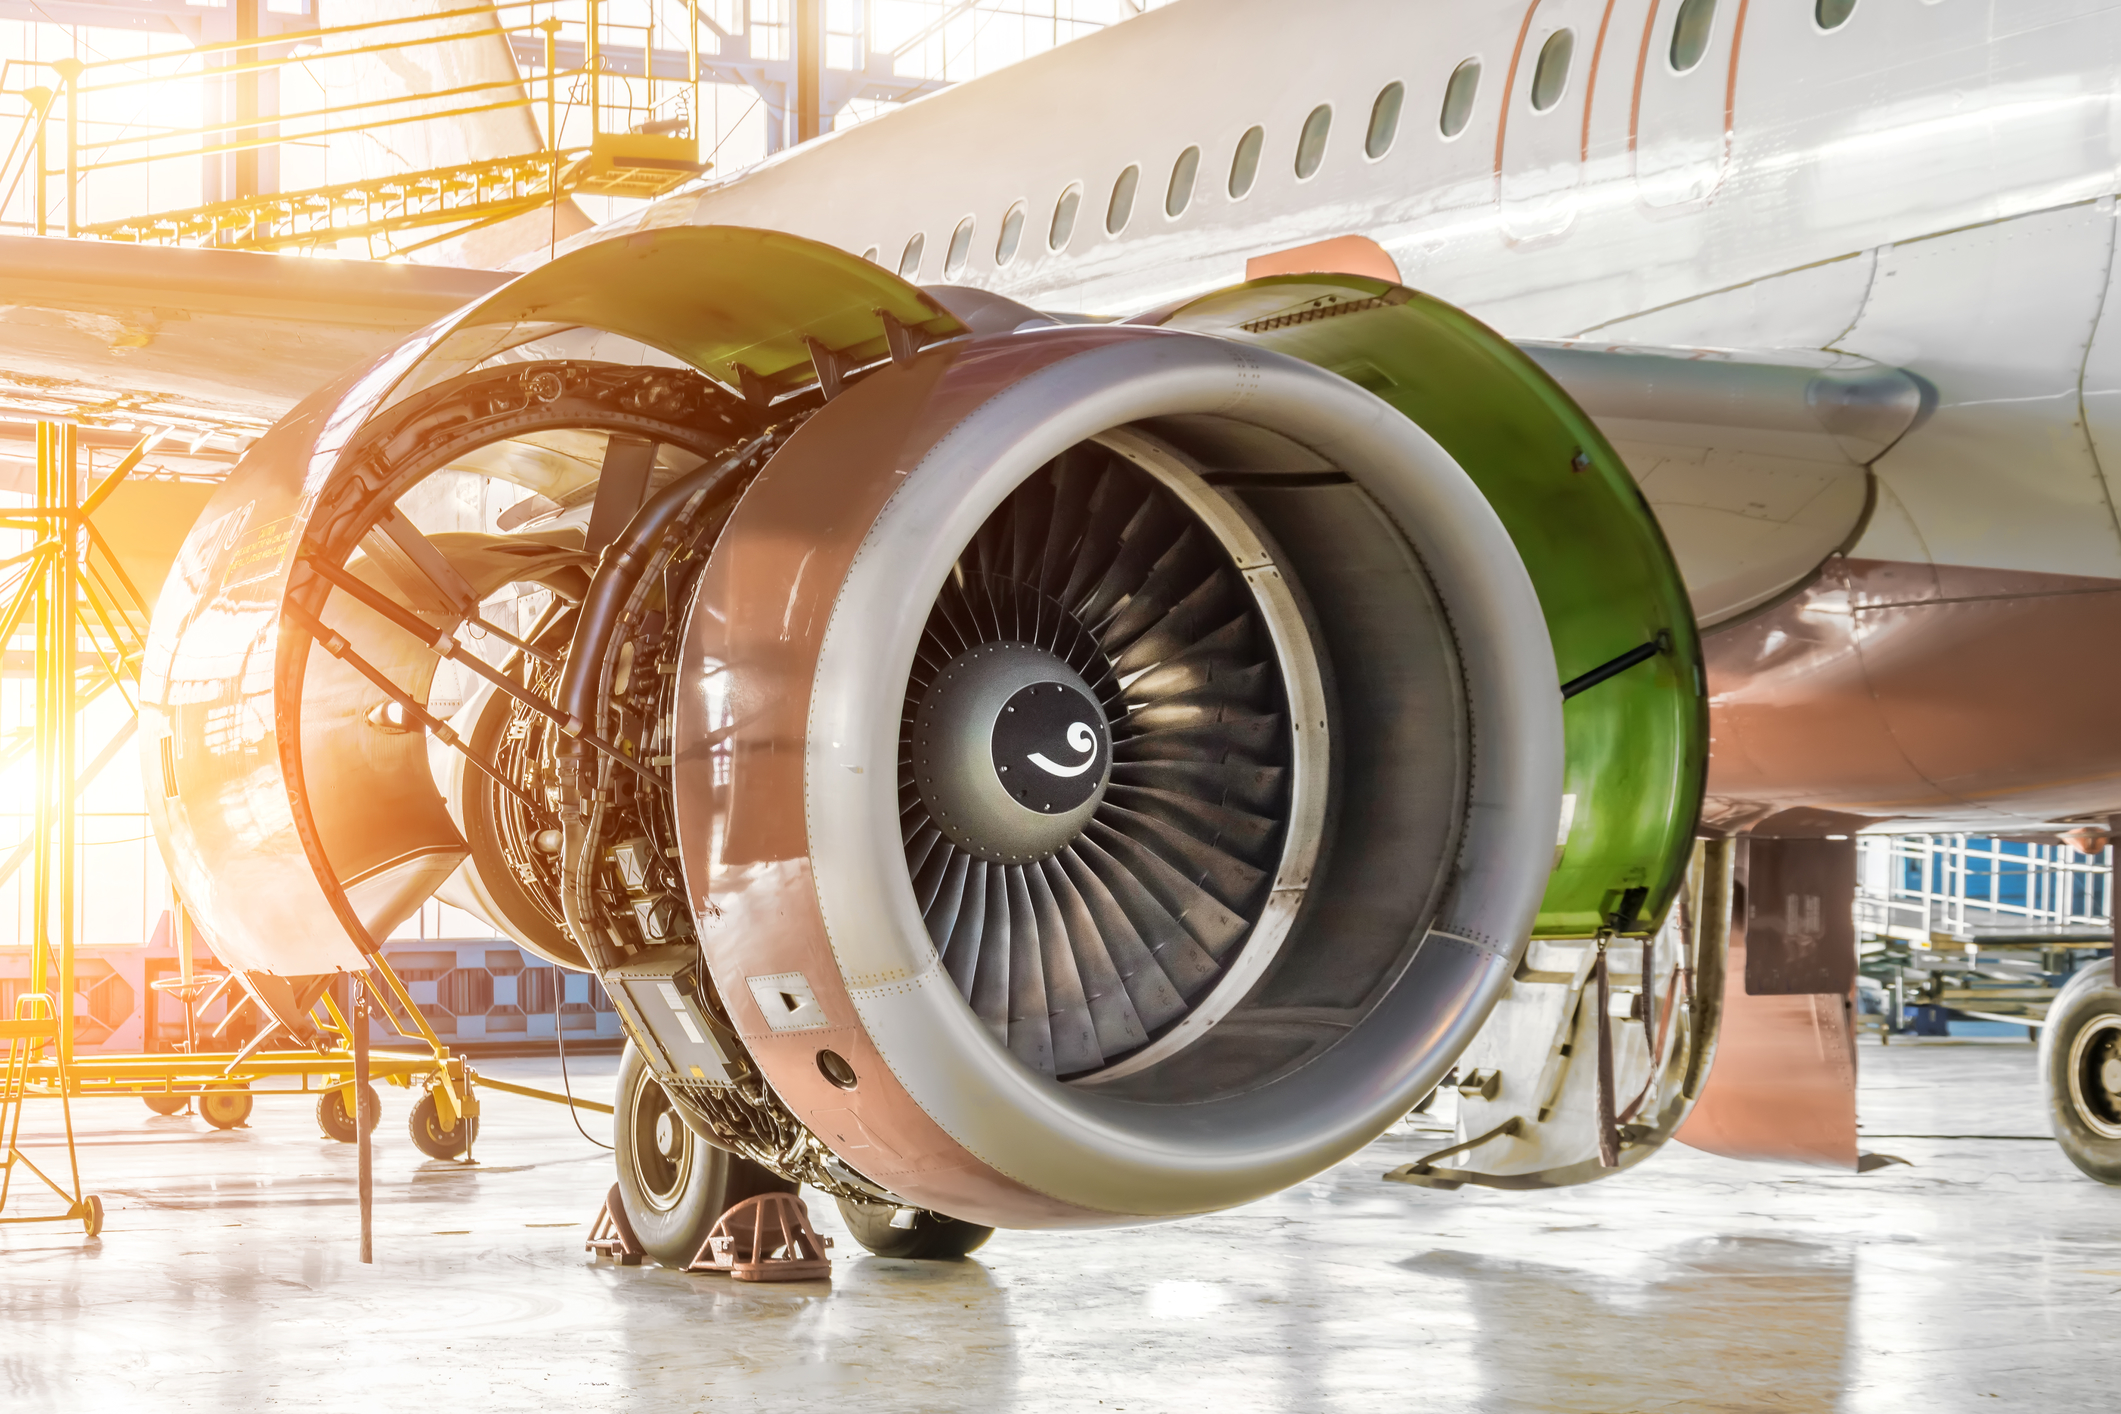 Aviation MRO Market Trends, Growth Insights, SWOT Analysis by Top Key Vendors and Forecast to 2031